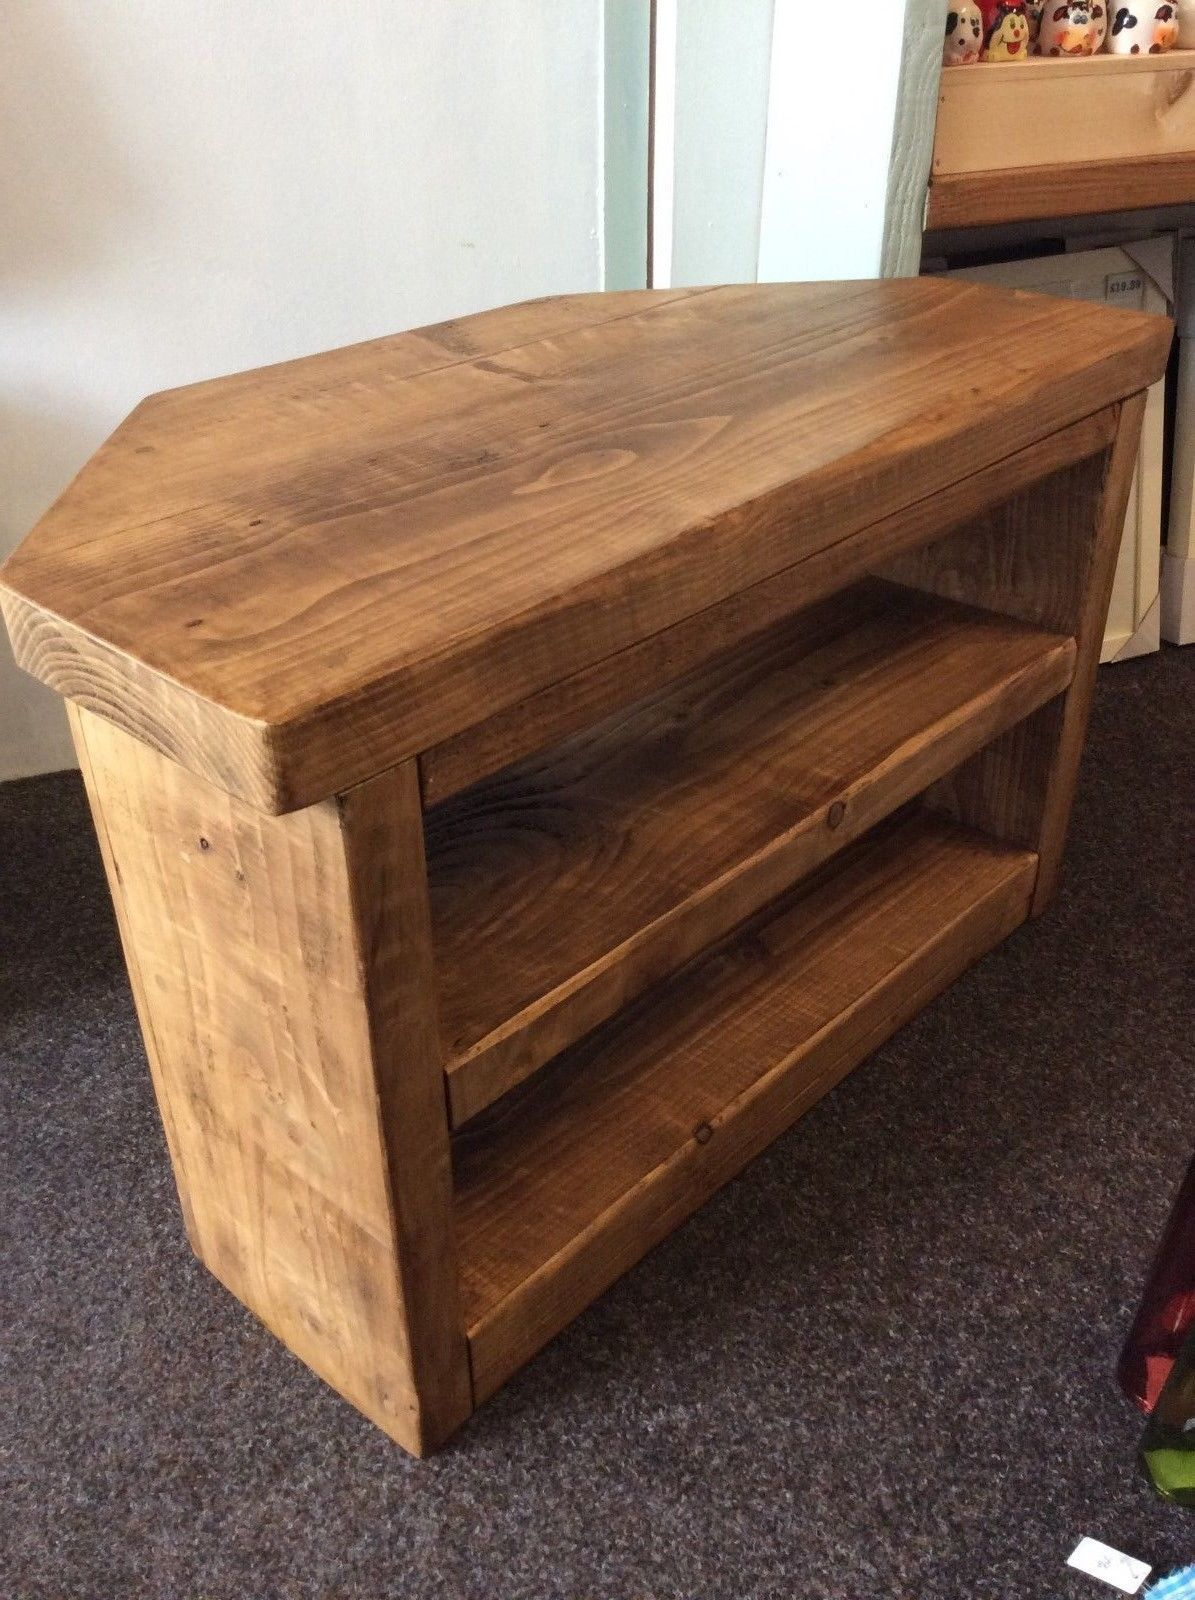 This Is For A Lovely Solid Corner Tv Stand Made In Devon So No Import Made From Solid Pine Th Wooden Corner Tv Stand Solid Pine Furniture Wood Corner Tv Stand